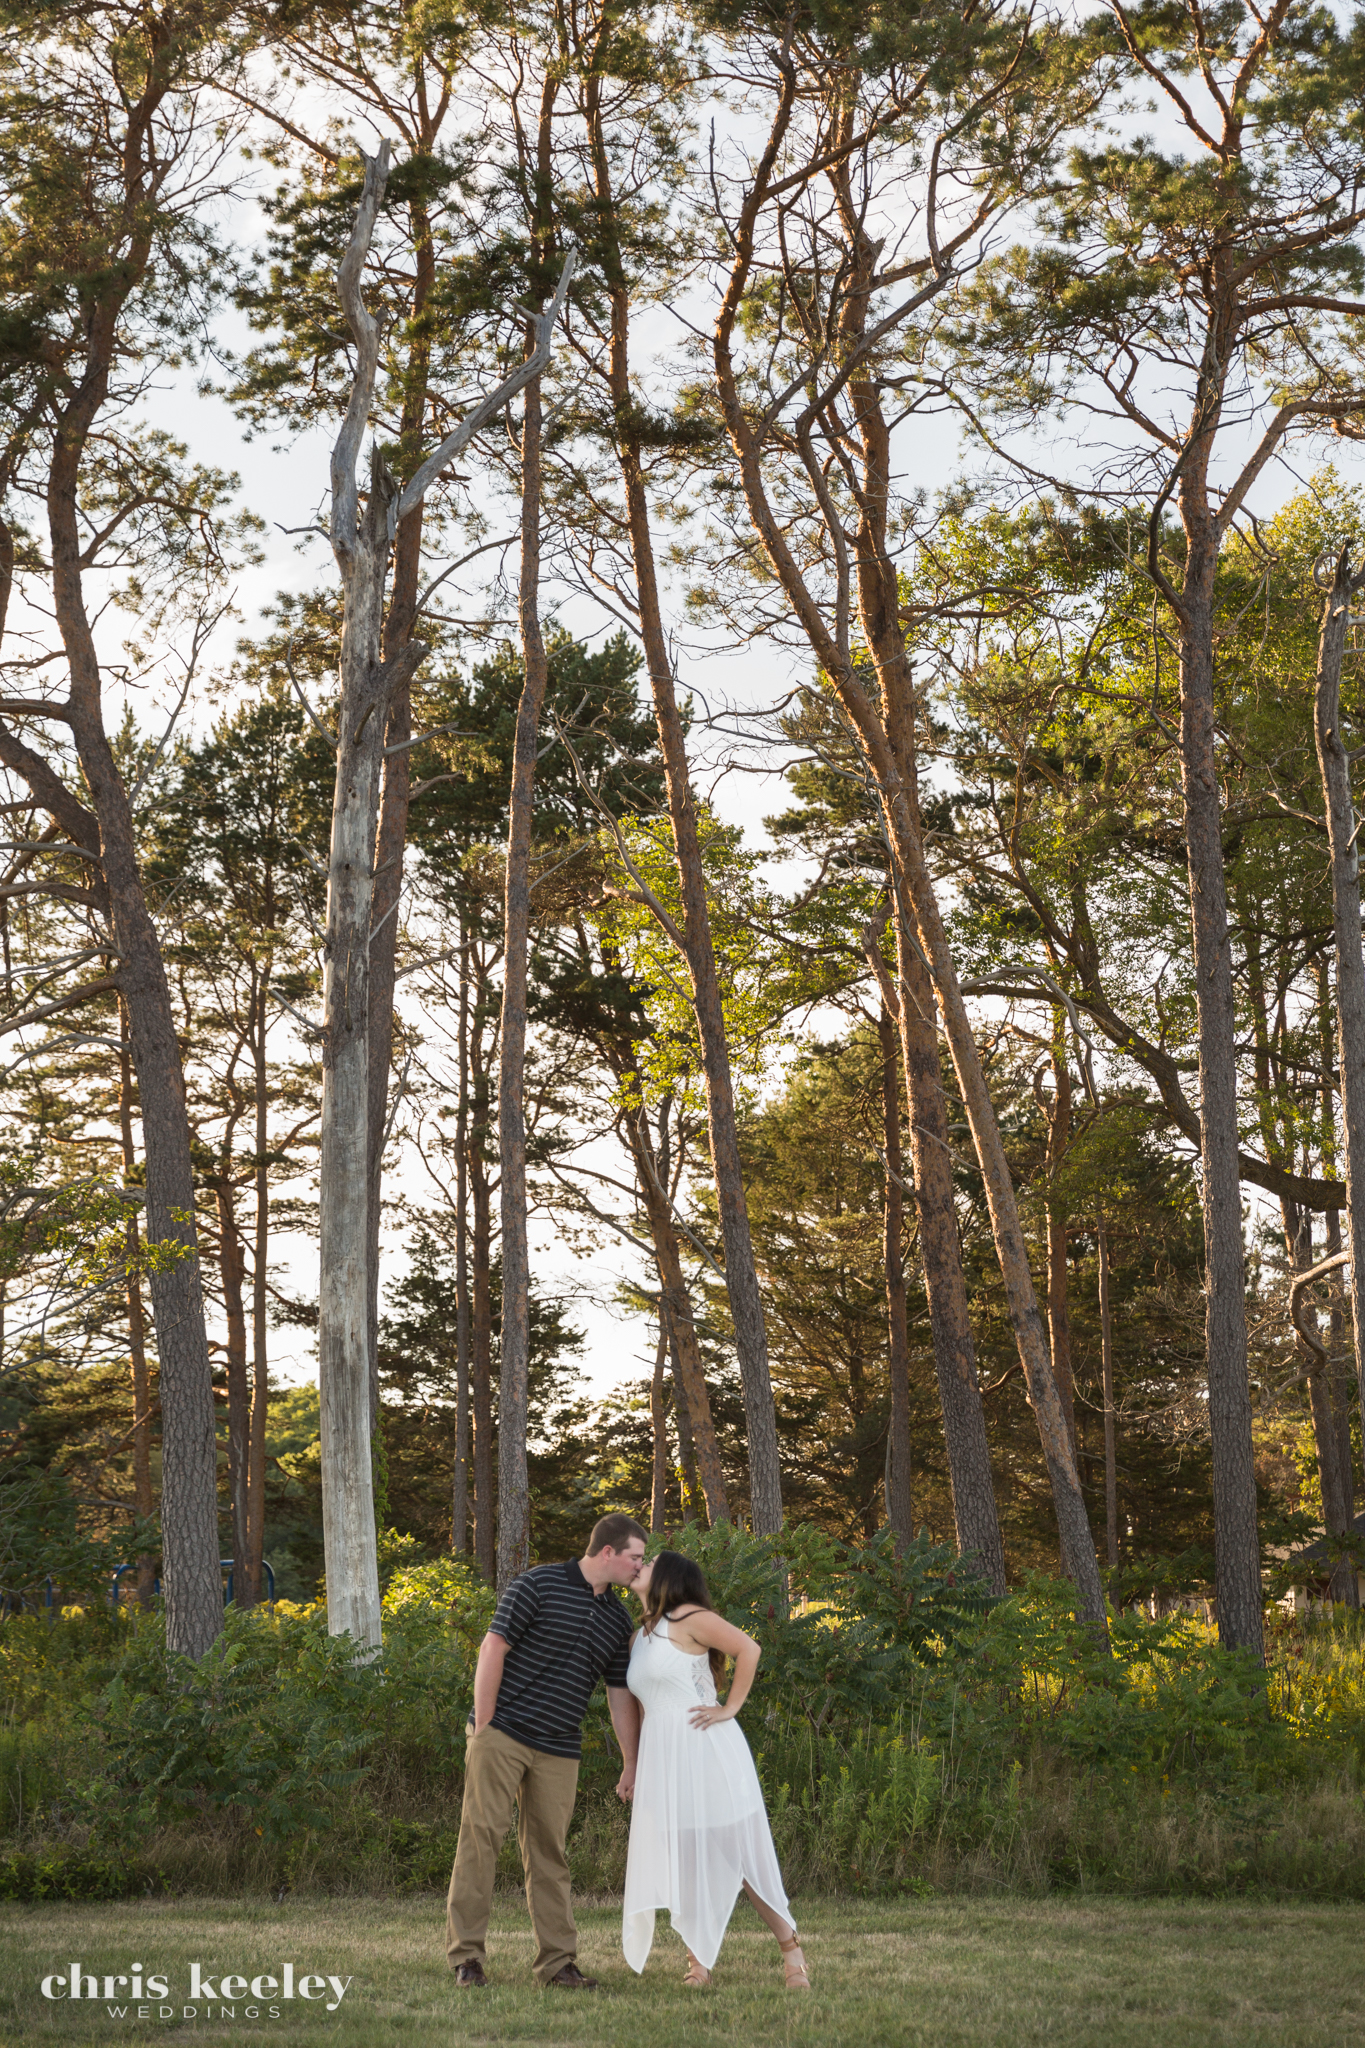 16-engagement-wedding-pictures-rye-new-hampshire-chris-keeley-weddings.jpg